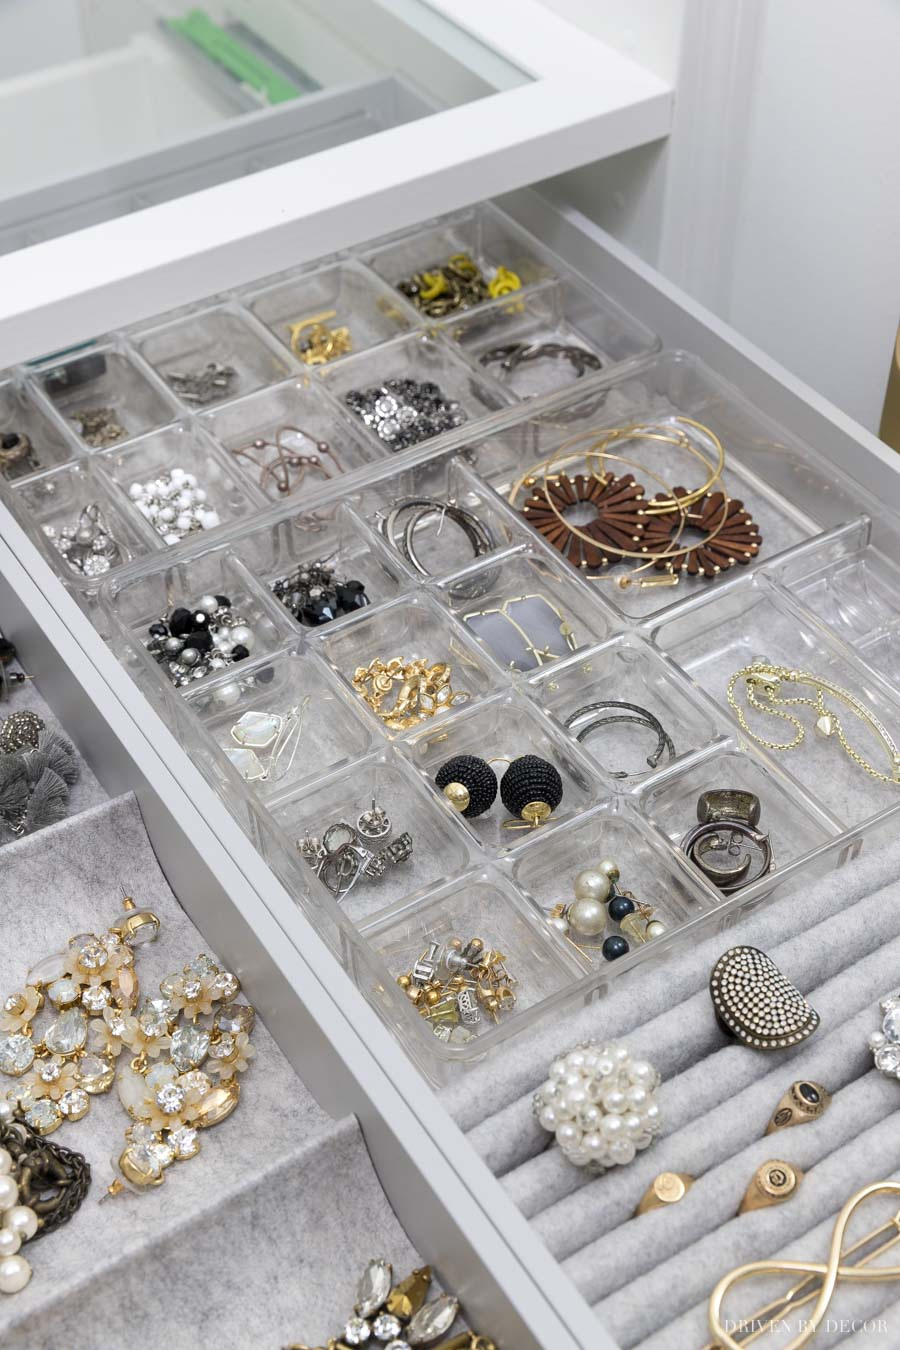 These smaller plastic organizers were a perfect fit in my IKEA PAX drawers for holding my earrings and other smaller jewelry!